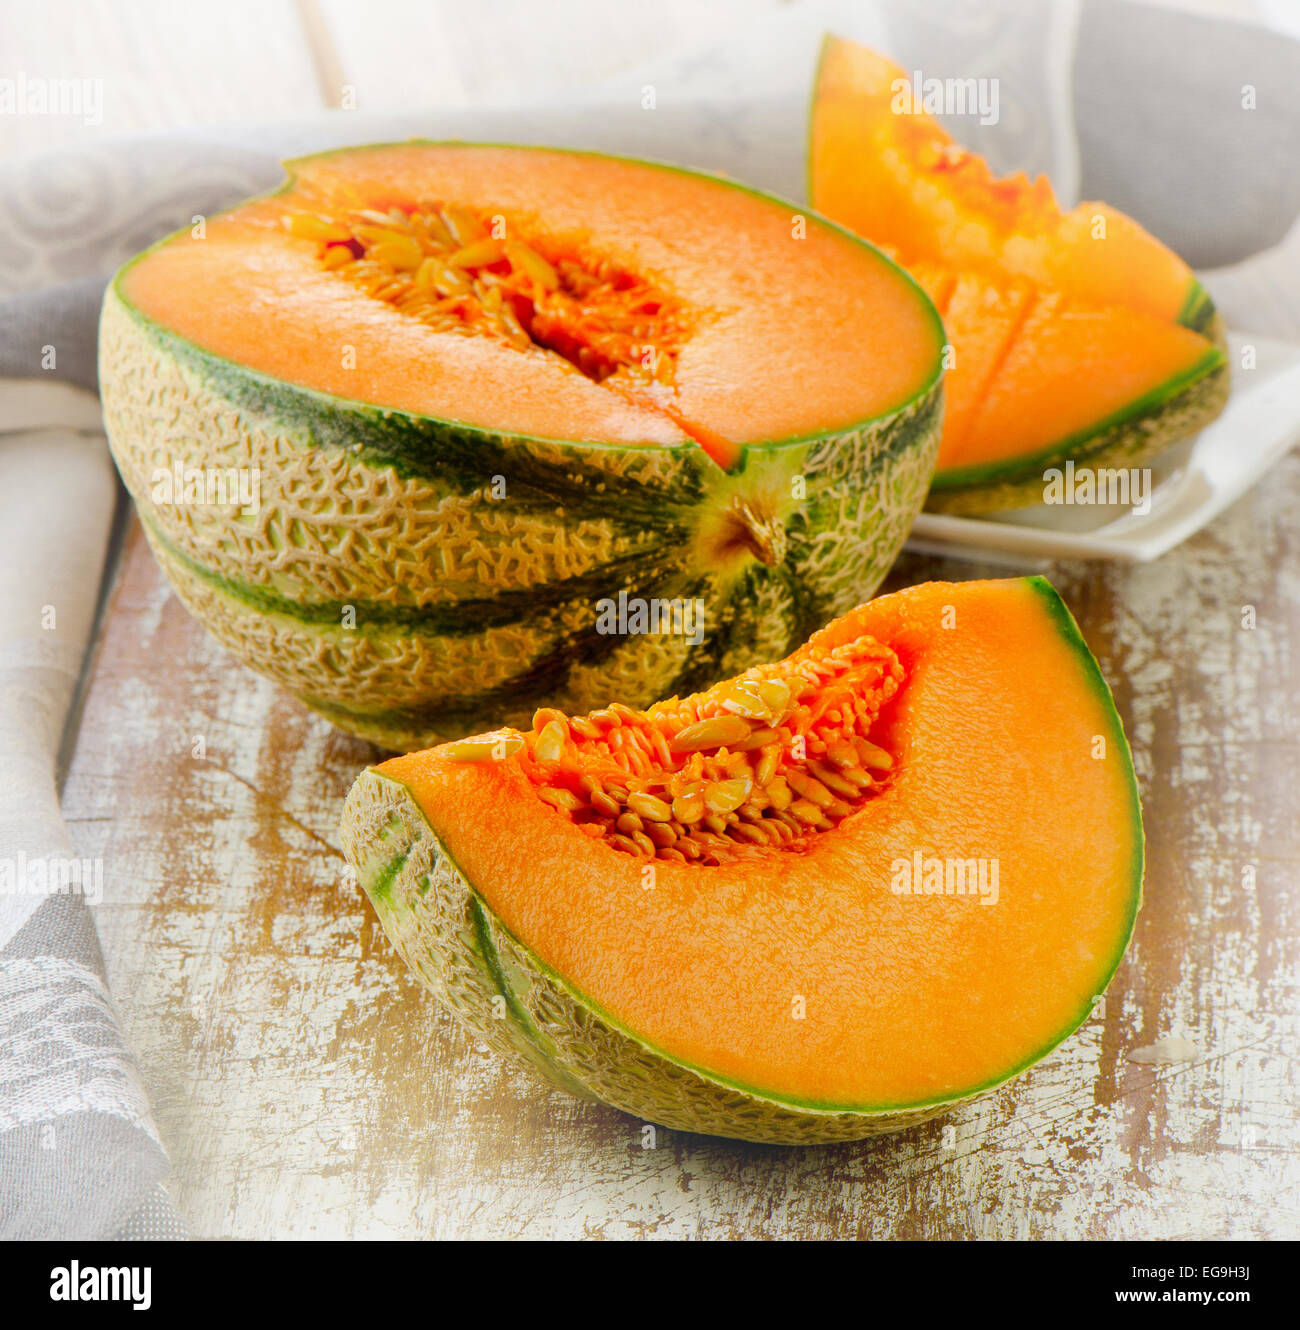 Melon cantaloup frais sur une table. Selective focus Photo Stock